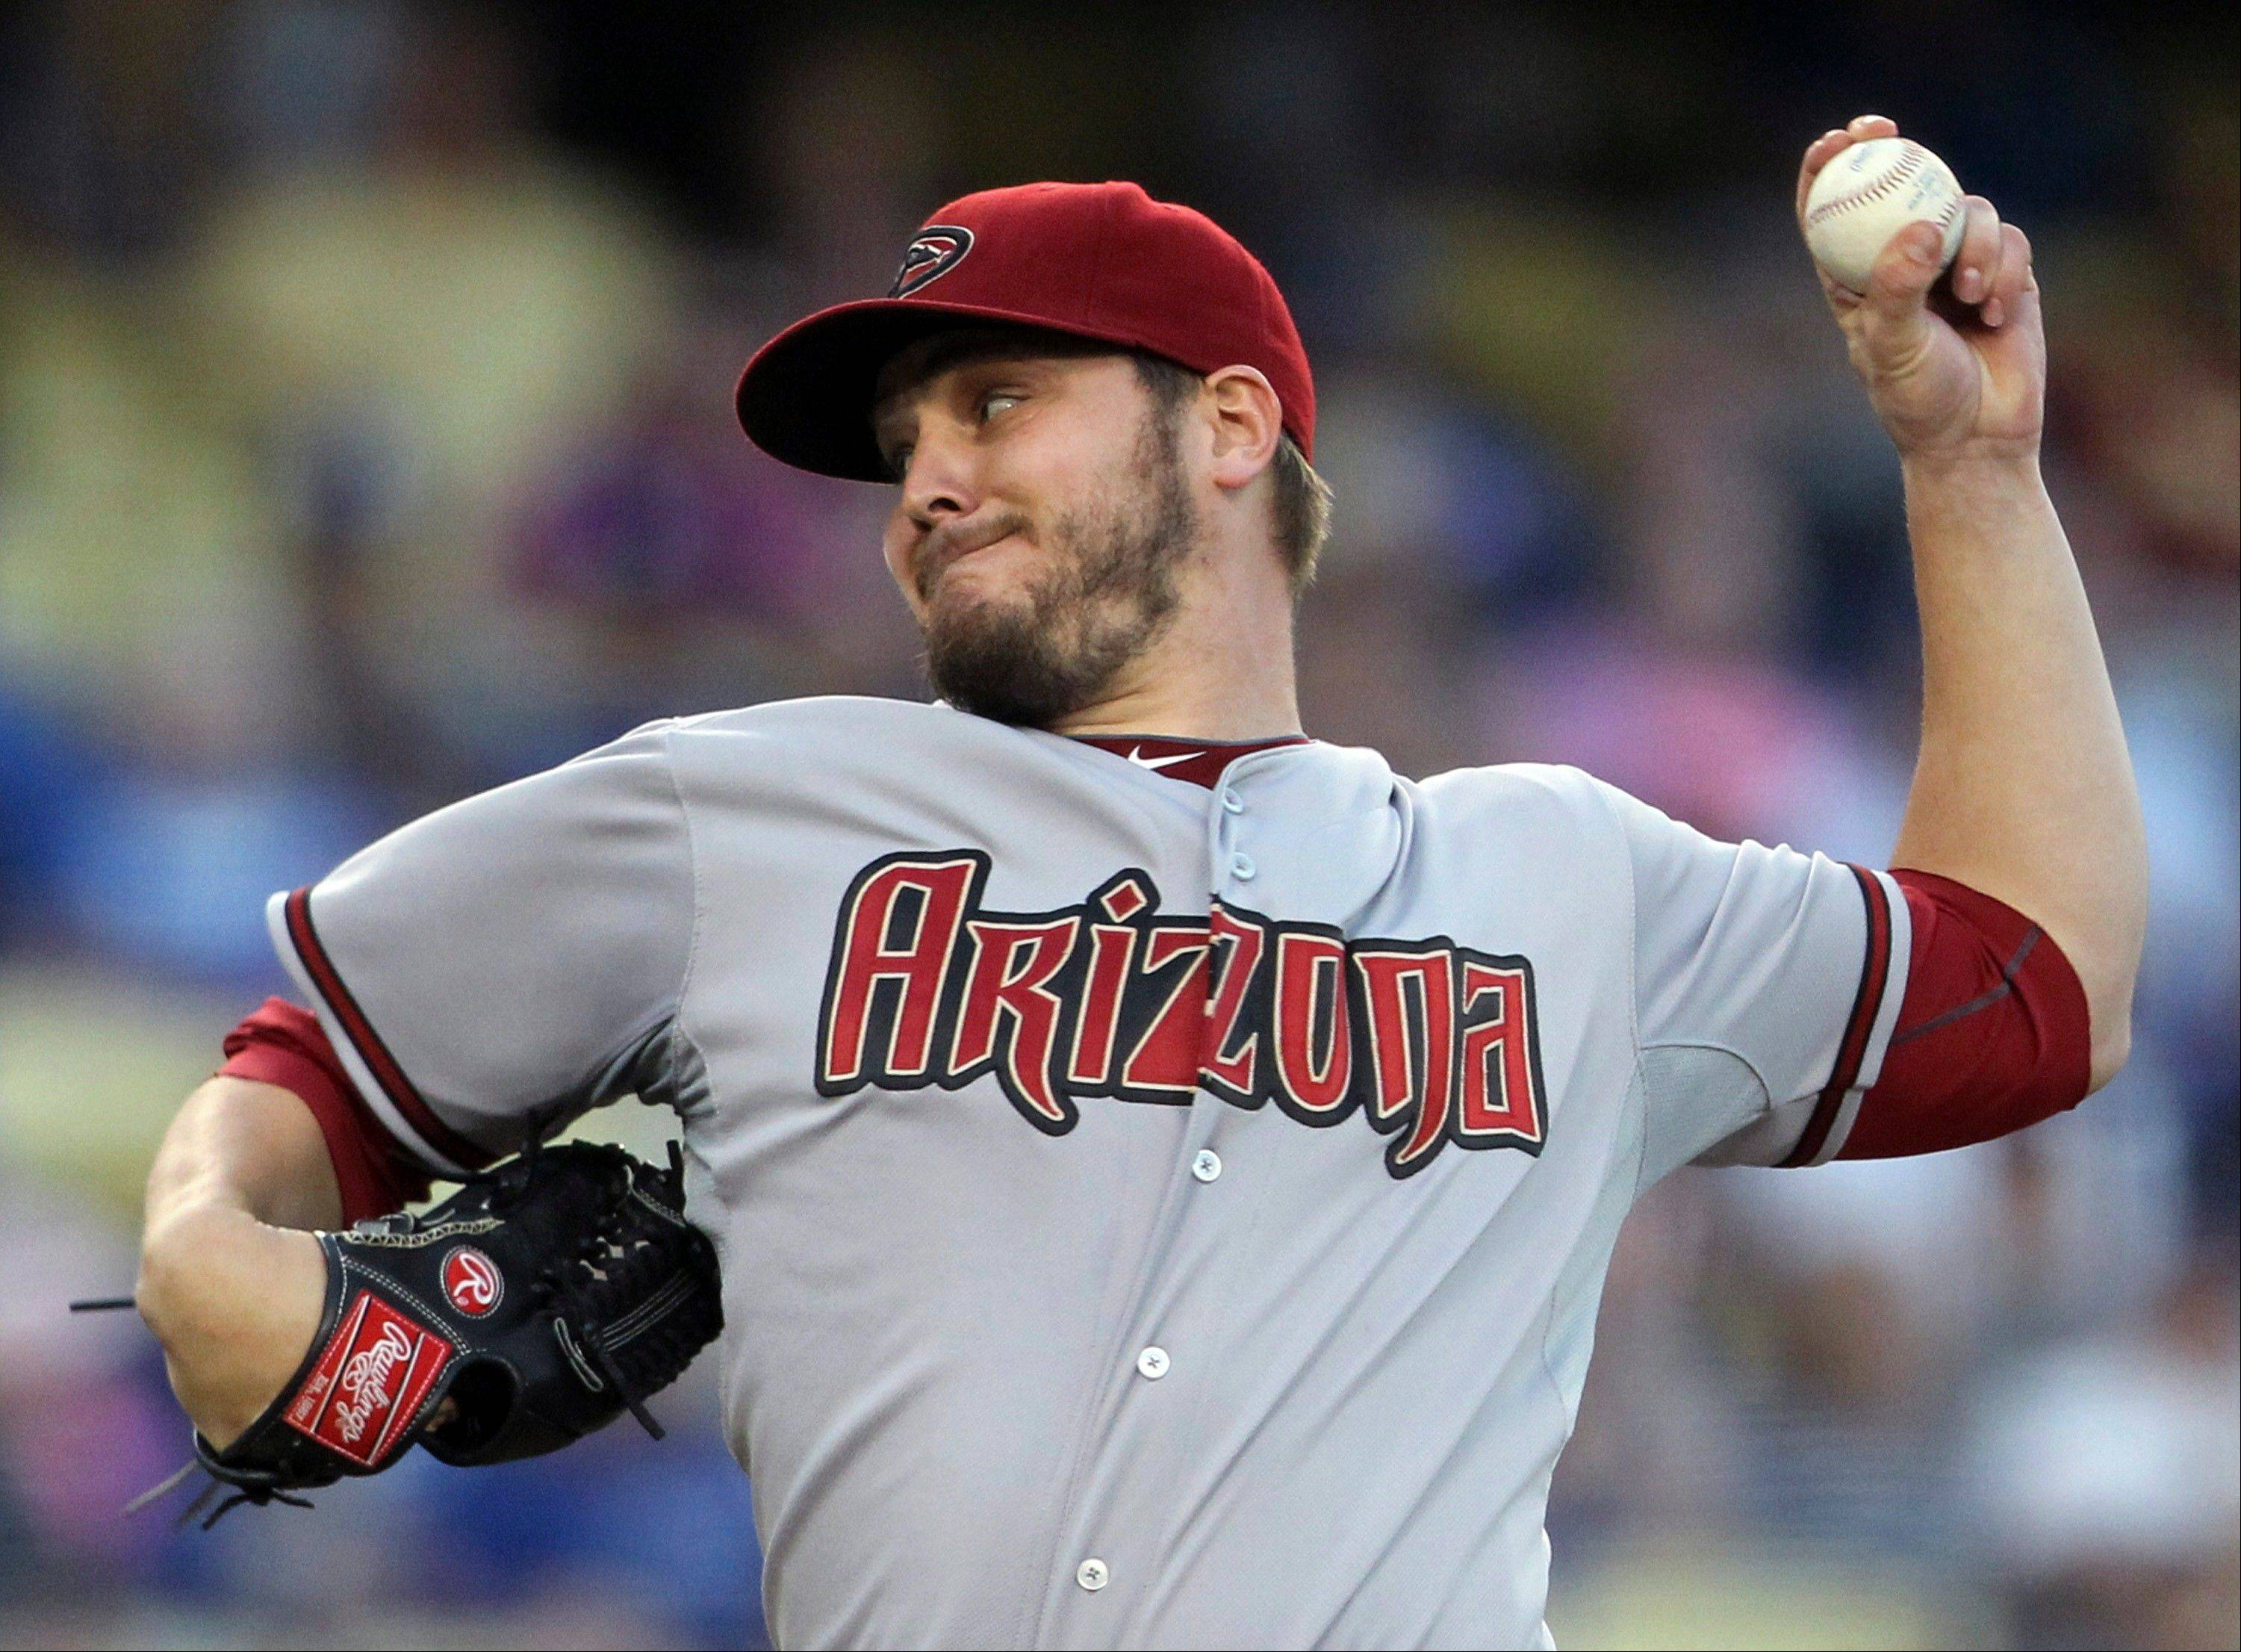 Diamondbacks rookie Wade Miley allowed three hits, struck out seven and walked one in a road victory Tuesday against the Los Angeles Dodgers.